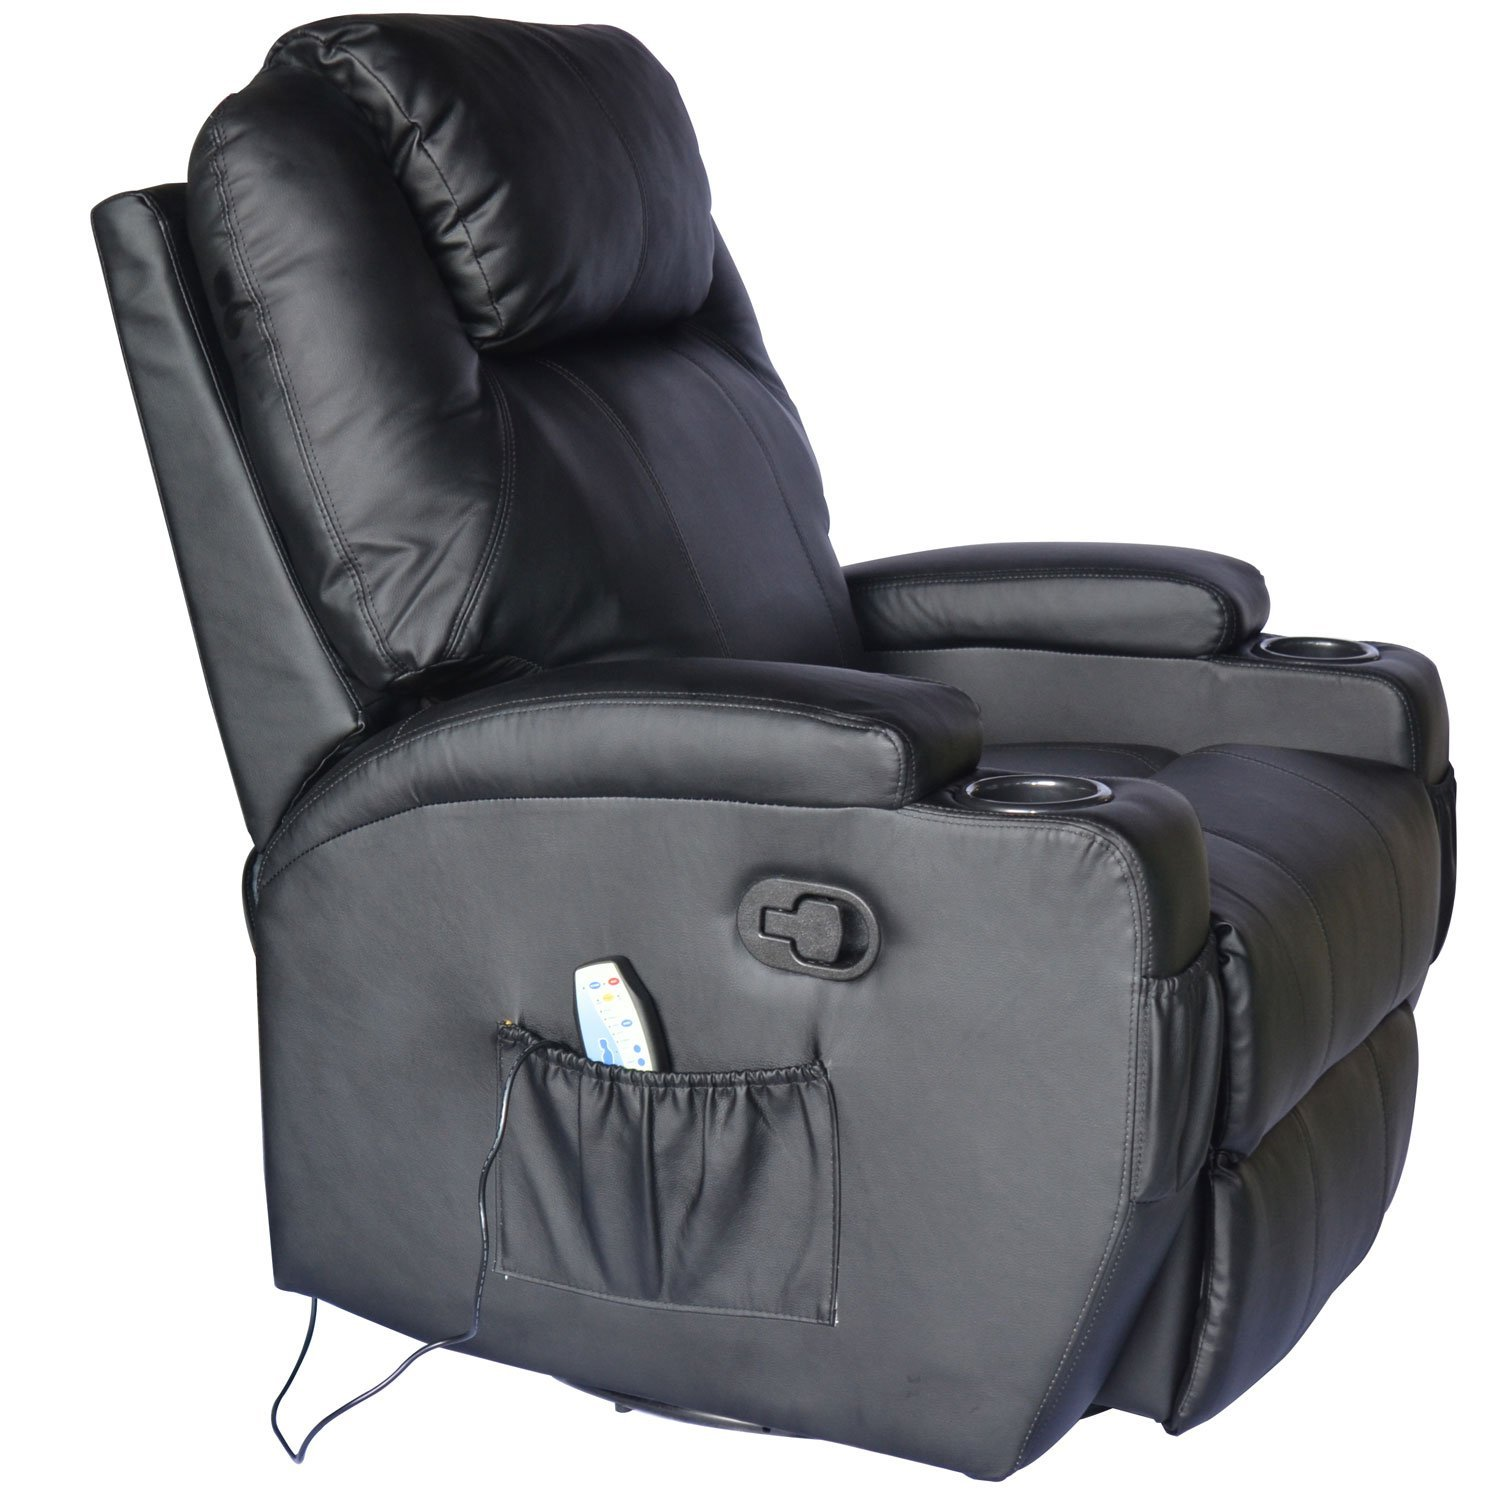 Permalink to Lovely Massage Chair Repair Graphics